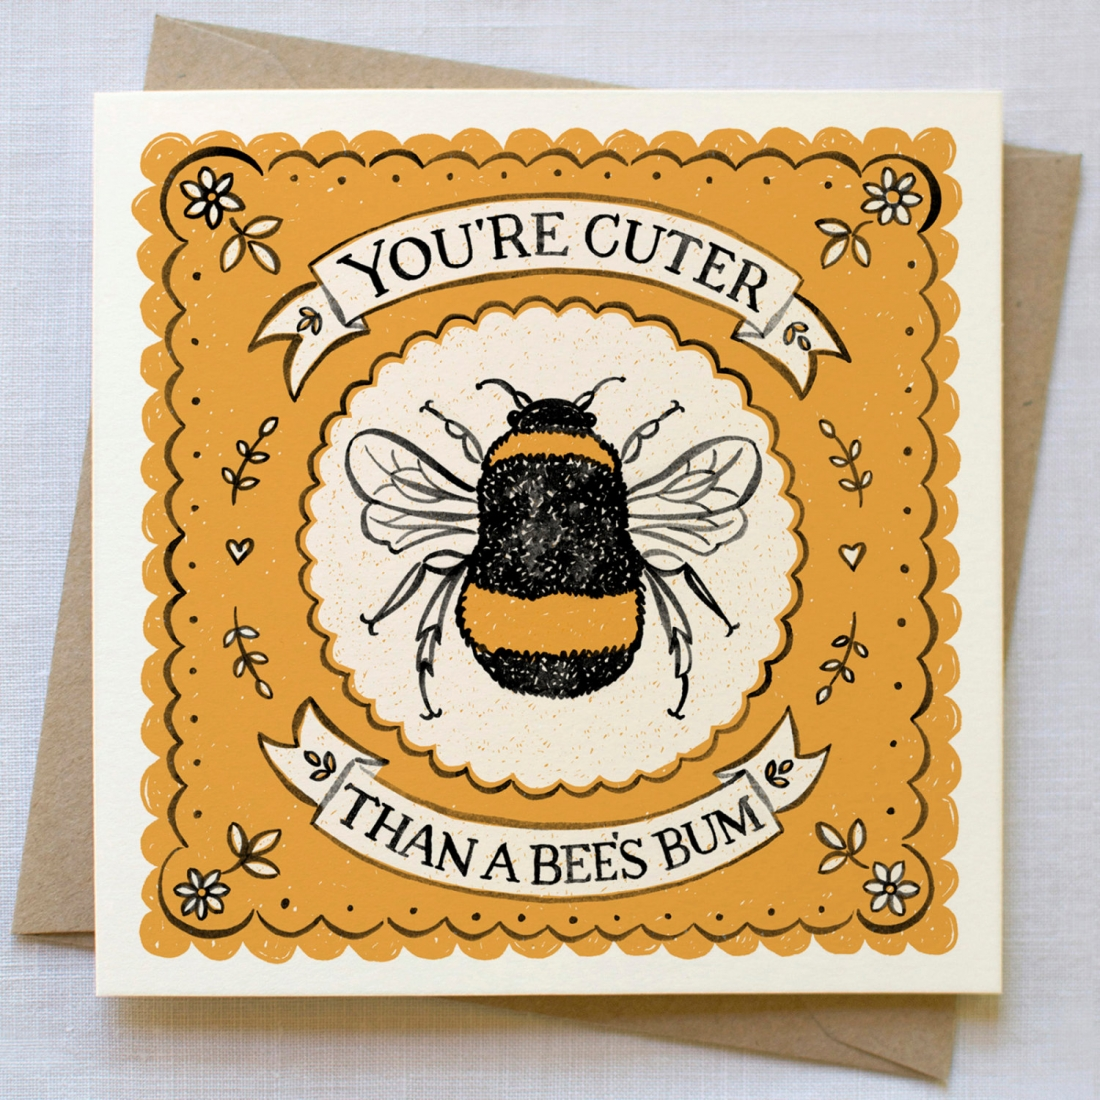 Priced at £3.49 | [Buy the card](https://www.etsy.com/uk/listing/462173925/cute-bee-card-valentines-card-valentine?ga_order=most_relevant&ga_search_type=all&ga_view_type=gallery&ga_search_query=valentines%20card&ref=sr_gallery-3-21)